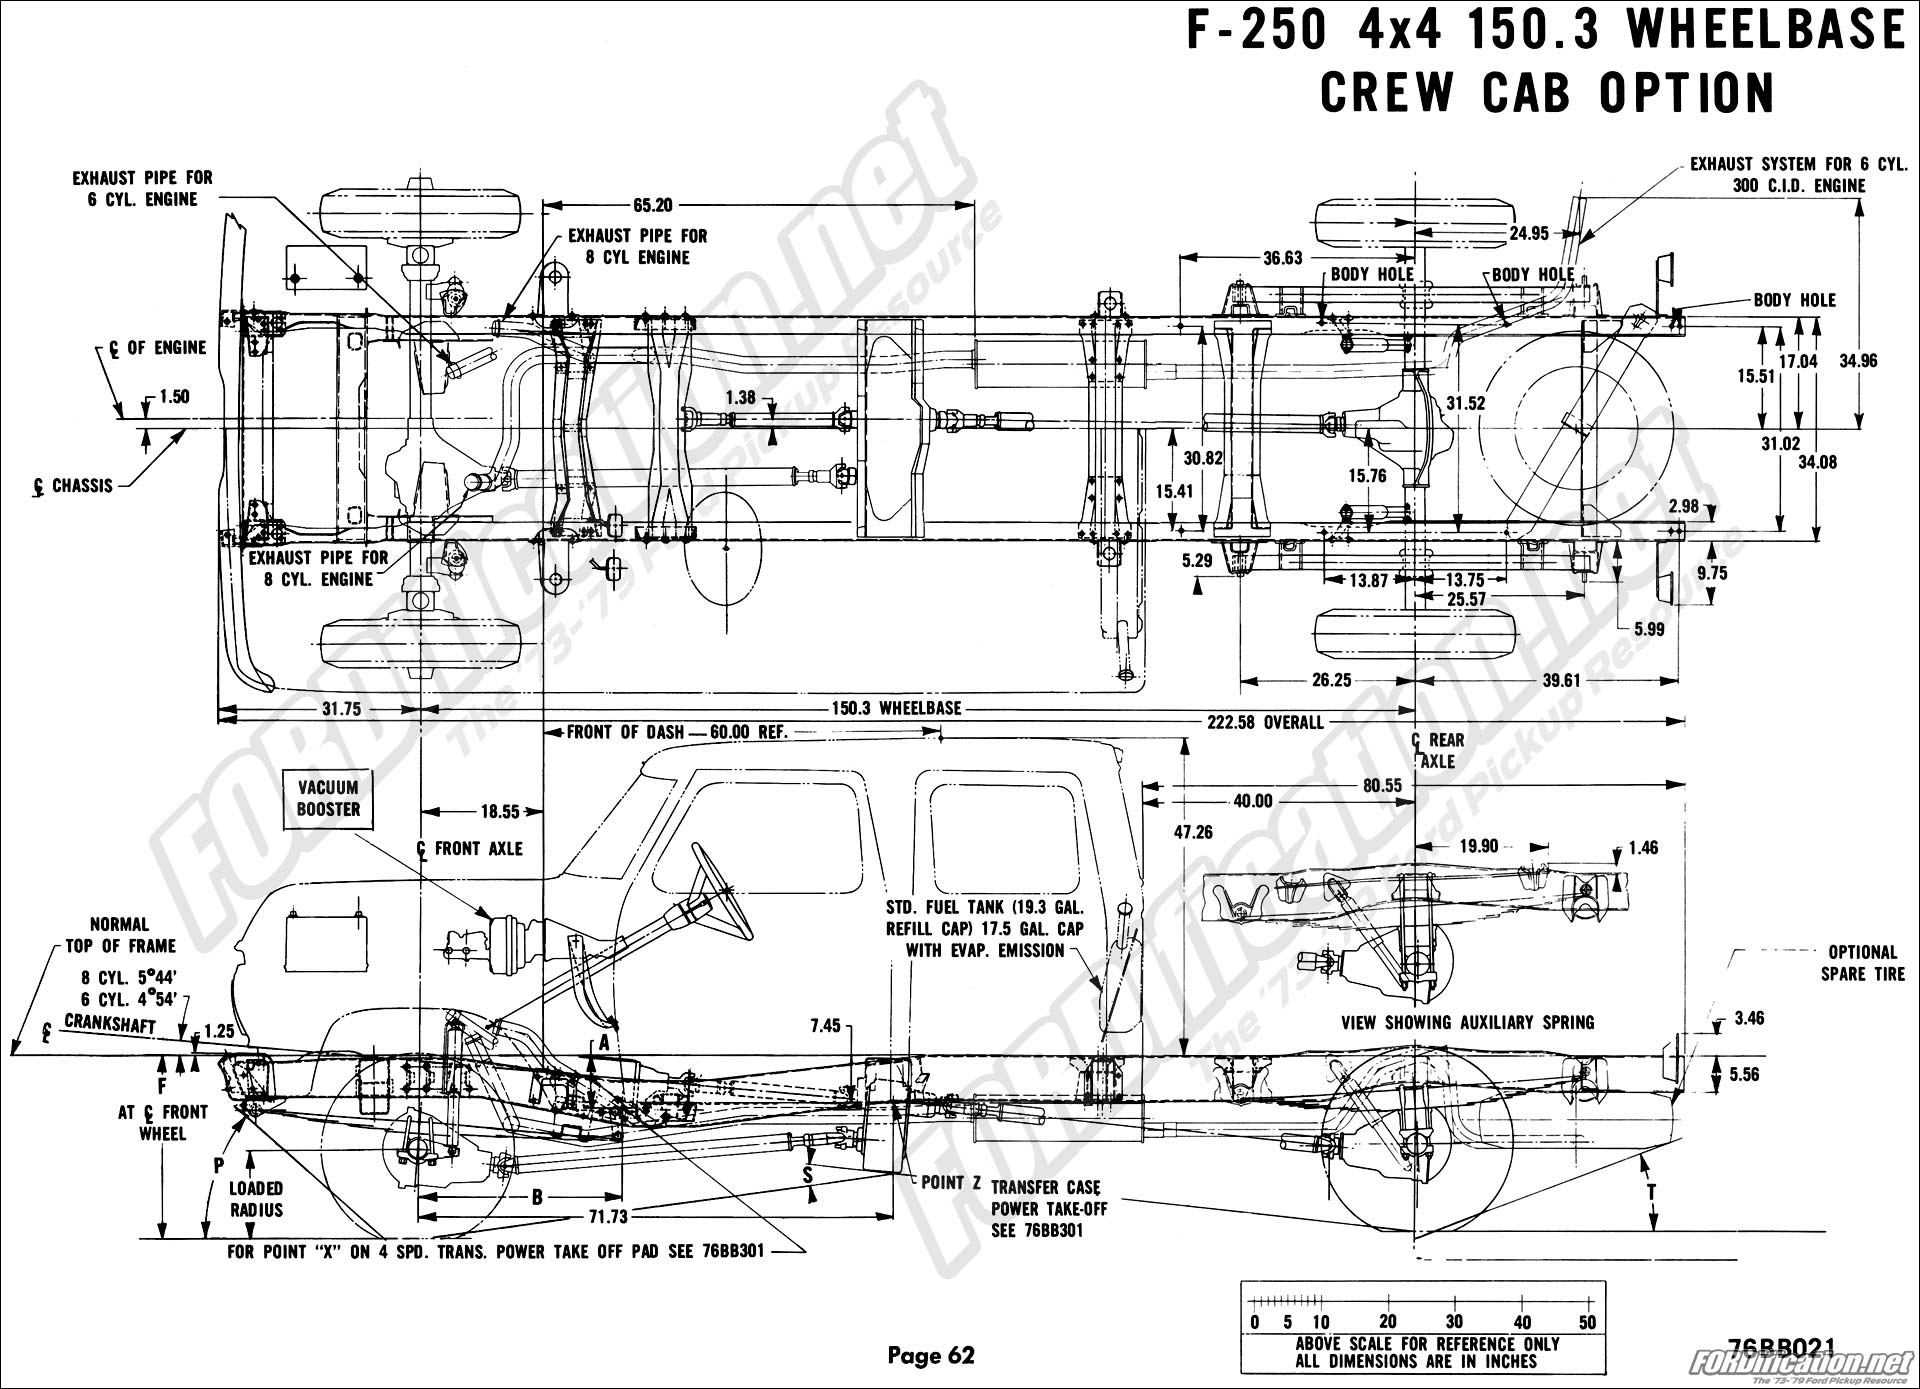 Chassis F Wd Crew on 1973 ford f 250 wiring diagram